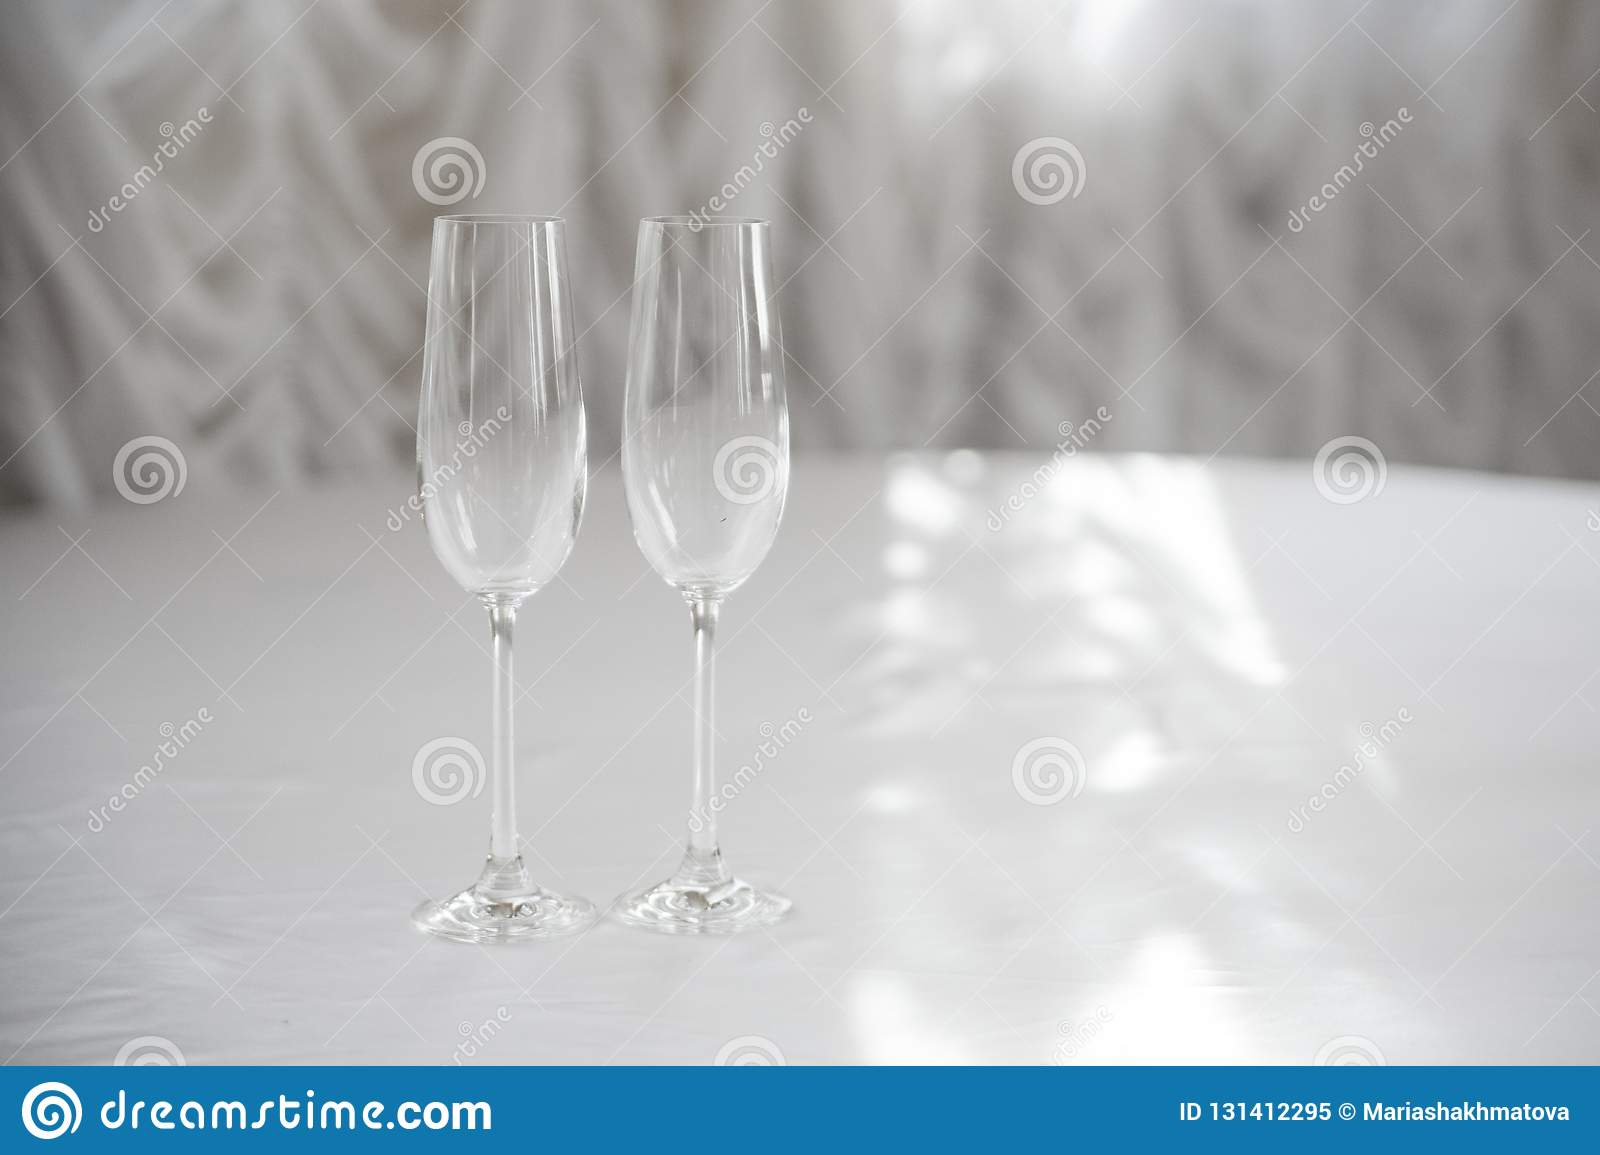 Empty champagne glasses on a white tablecloth against the background of white curtains in backlight